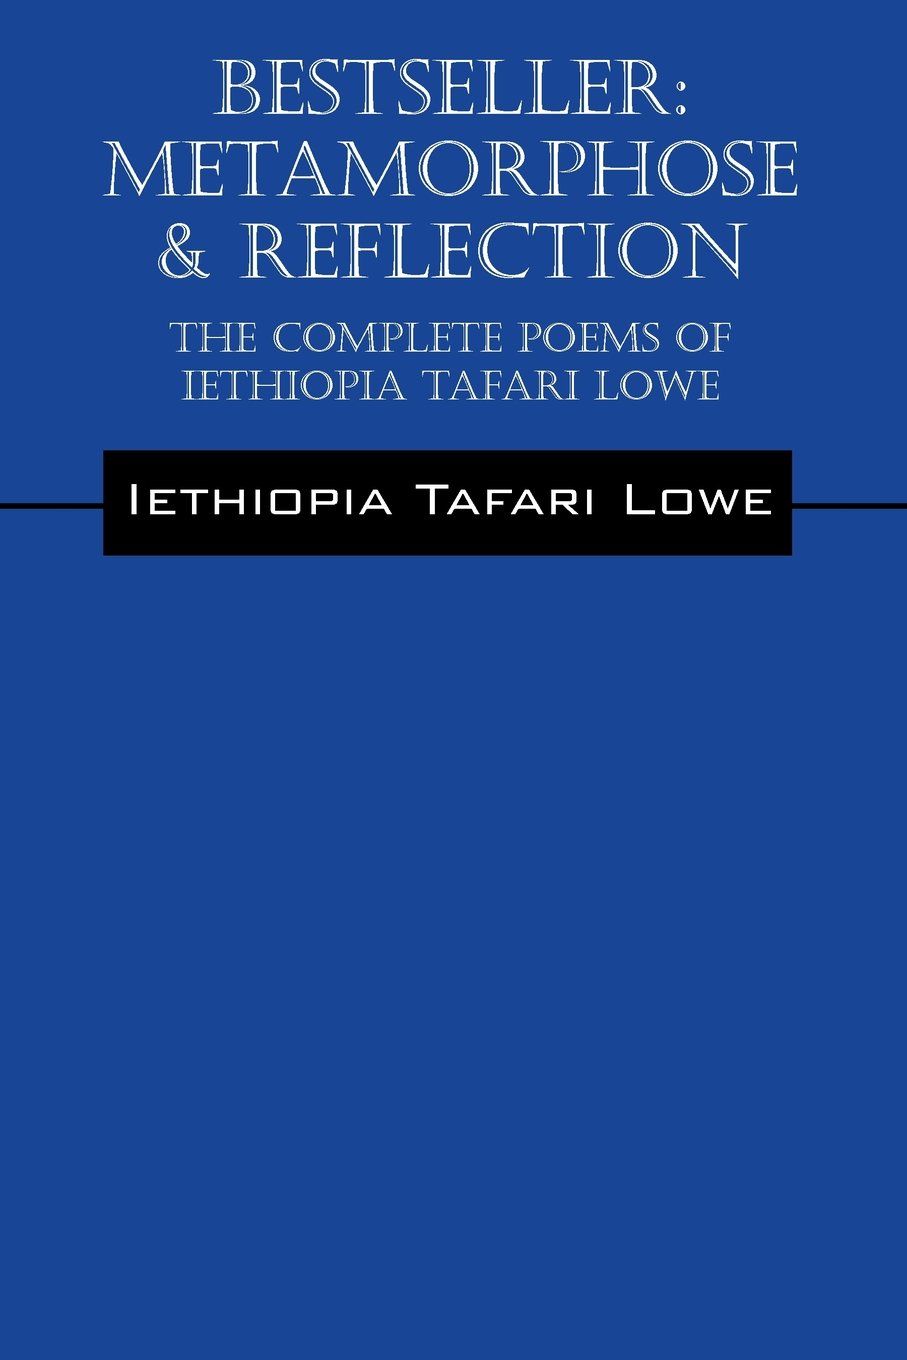 Download Bestseller: Metamorphose & Reflection - The Complete Poems of Iethiopia Tafari Lowe PDF